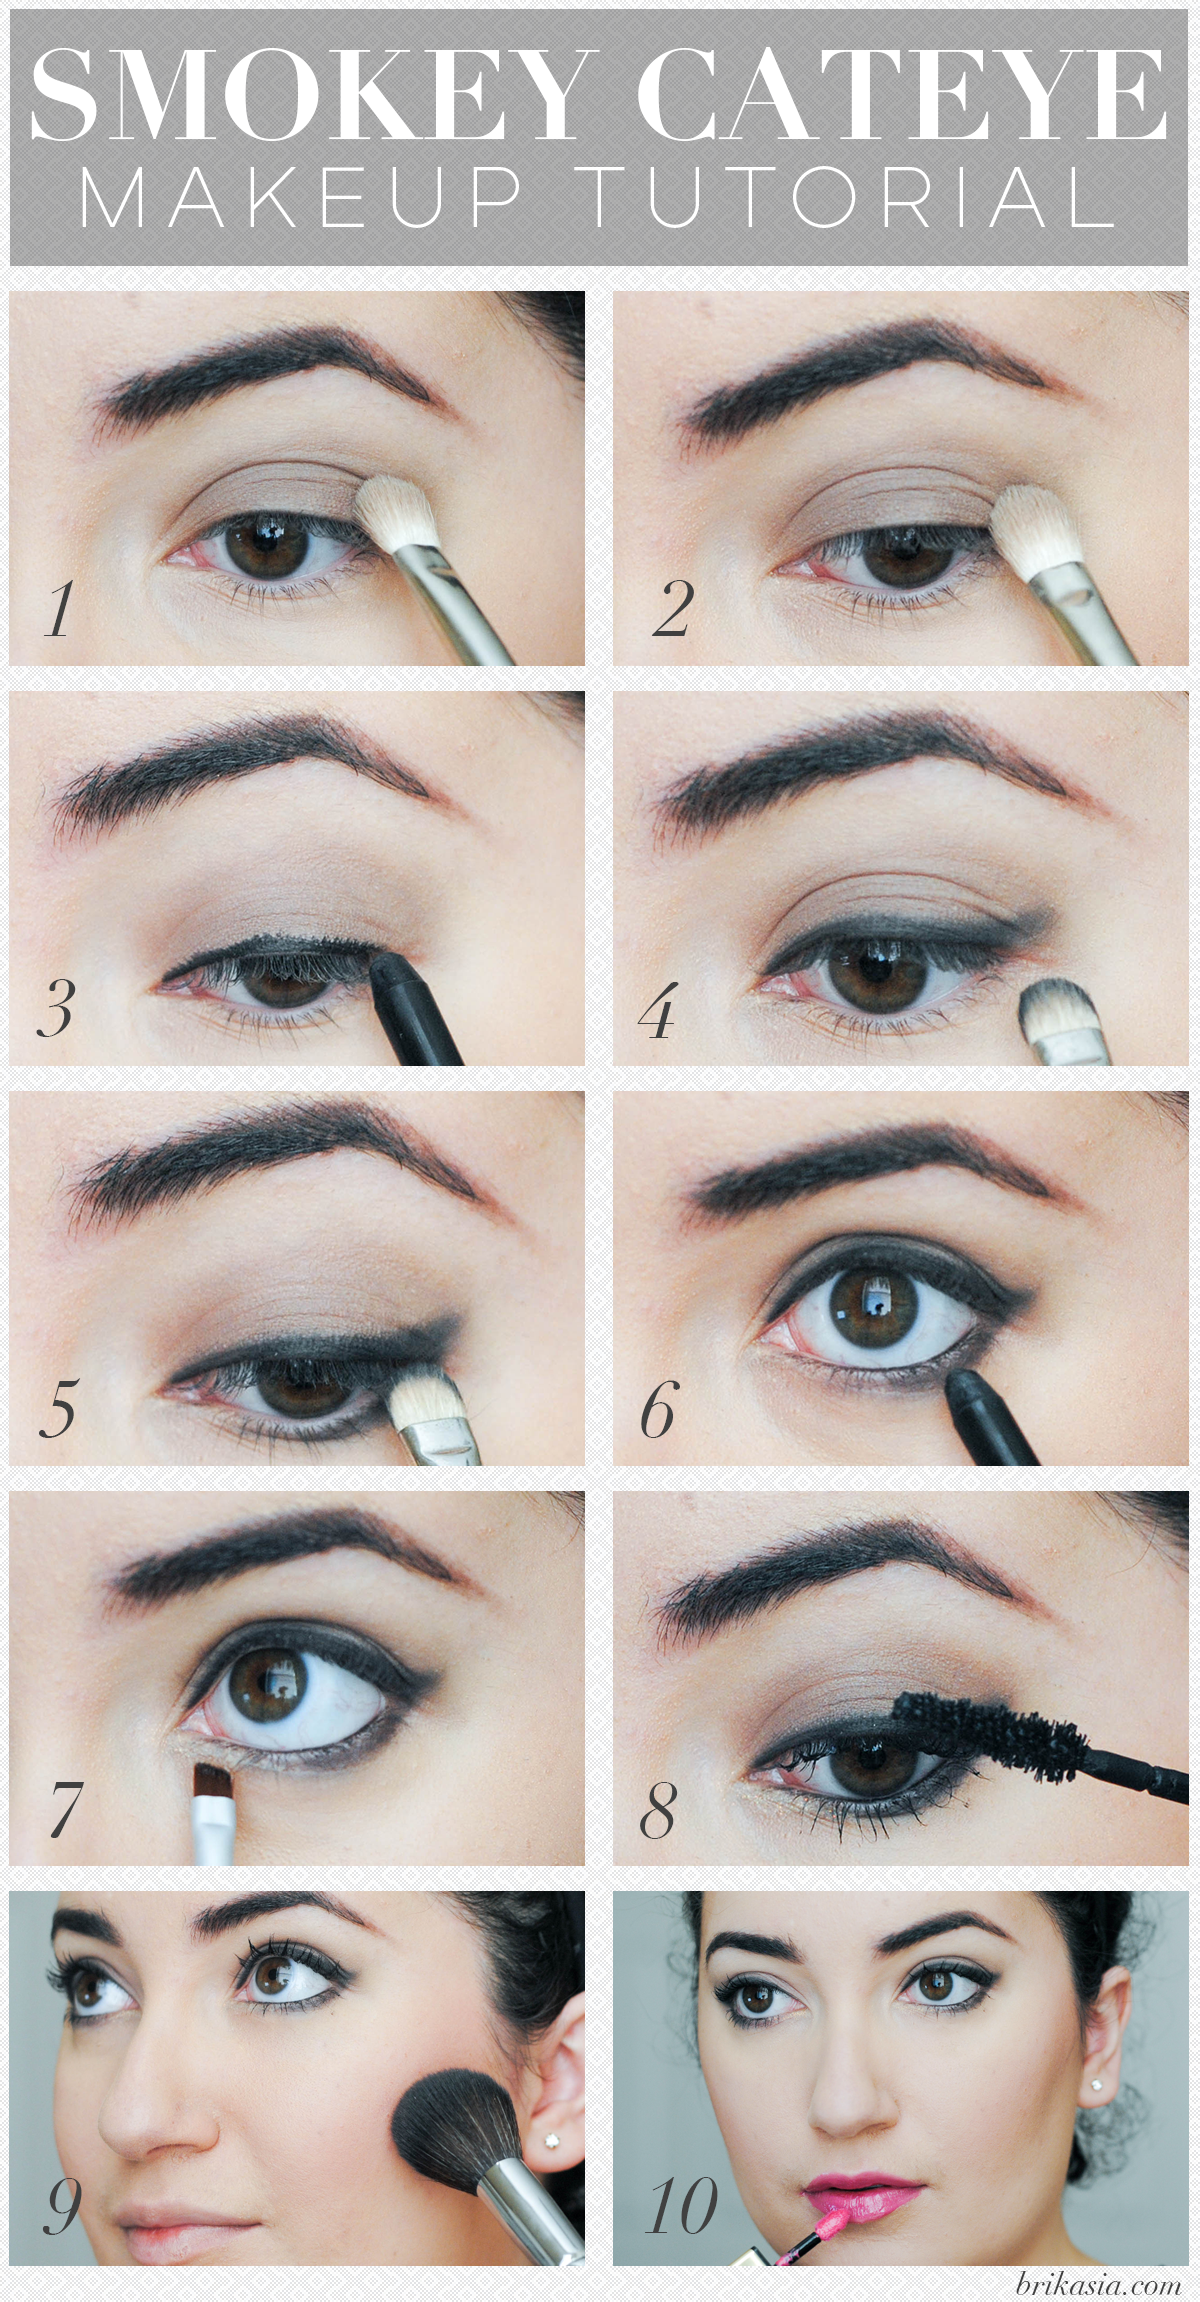 Smokey cateye makeup tutorial makeup tutorials and hair makeup smokey cateye makeup tutorial baditri Images